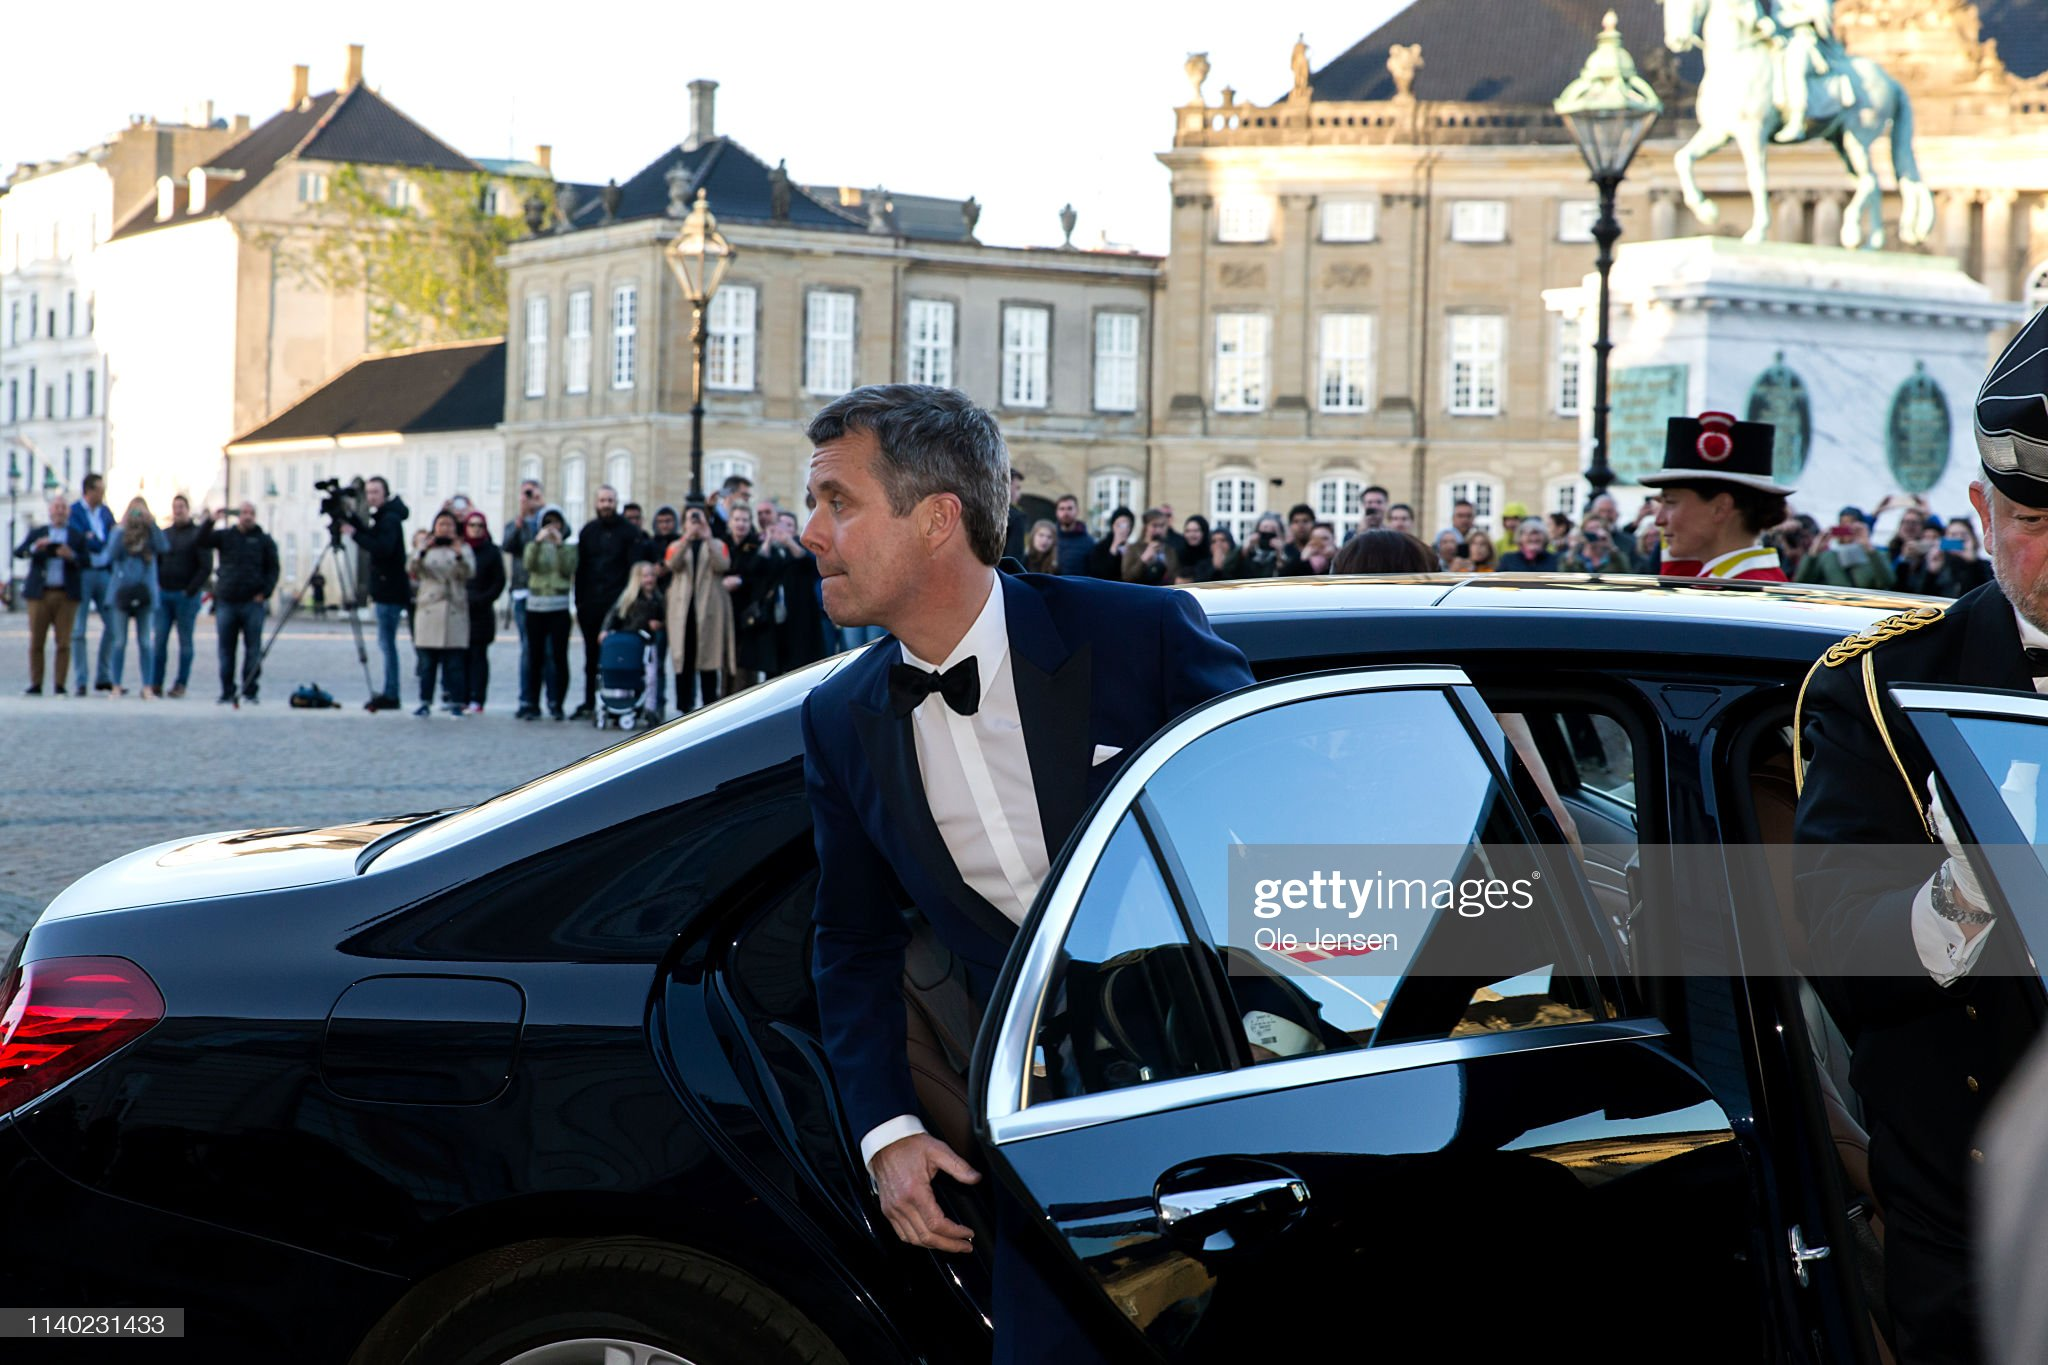 crown-prince-frederik-of-denmark-arrives-at-princess-benedikte-of-picture-id1140231433